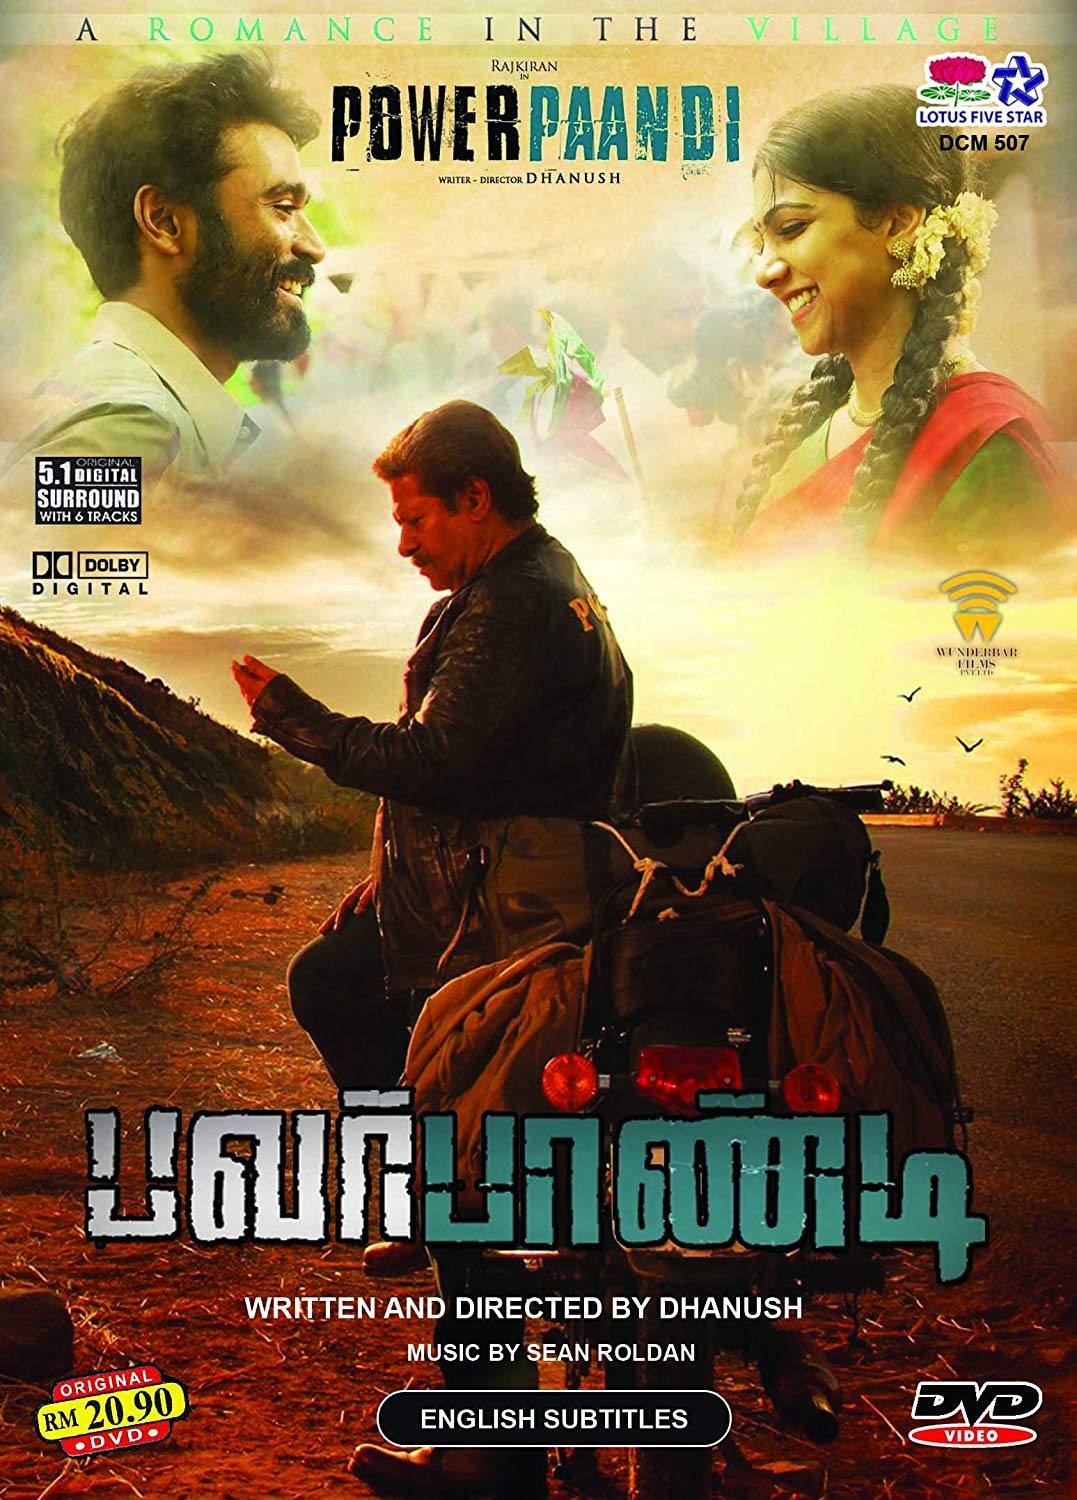 Power Paandi movie download 480p, Power Paandi movie download 720p, Power Paandi movie download 1080p, Power Paandi movie download free